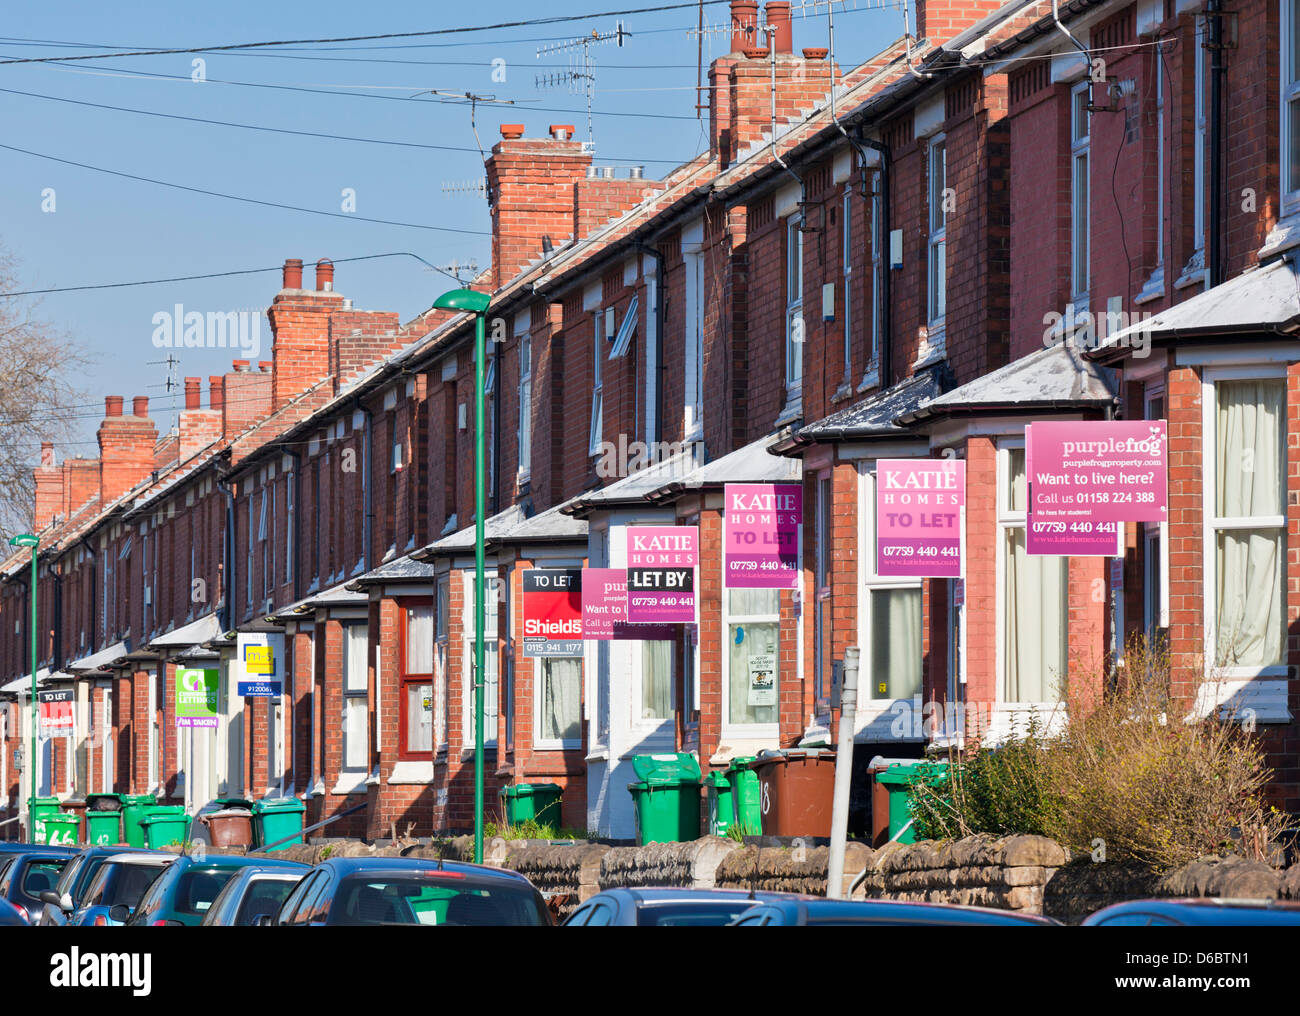 For sale and for rent signs in a residential area mainly for the student population of Nottingham and trent University - Stock Image